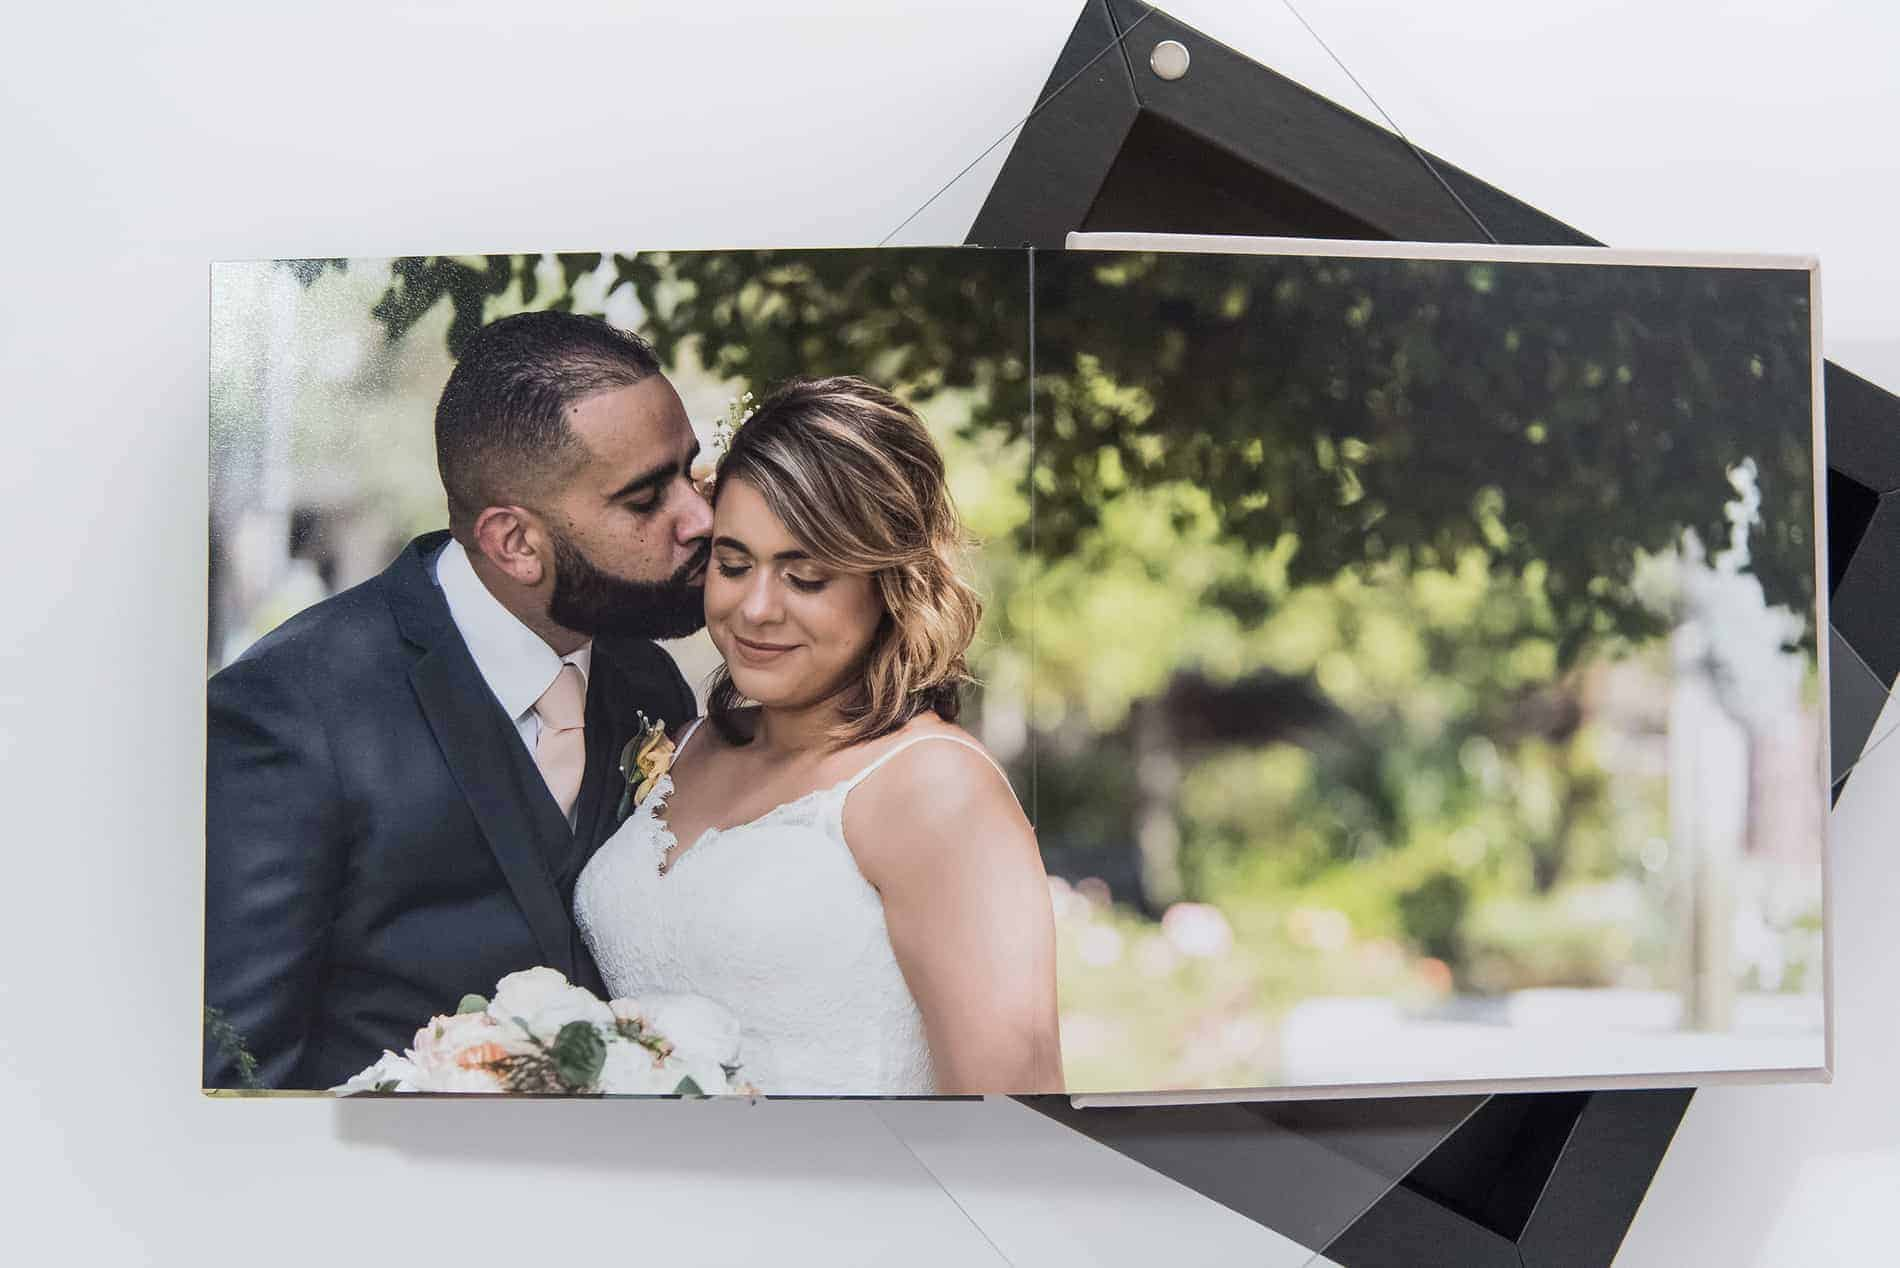 Cute couples wedding album produced by wedding photographers in Orlando